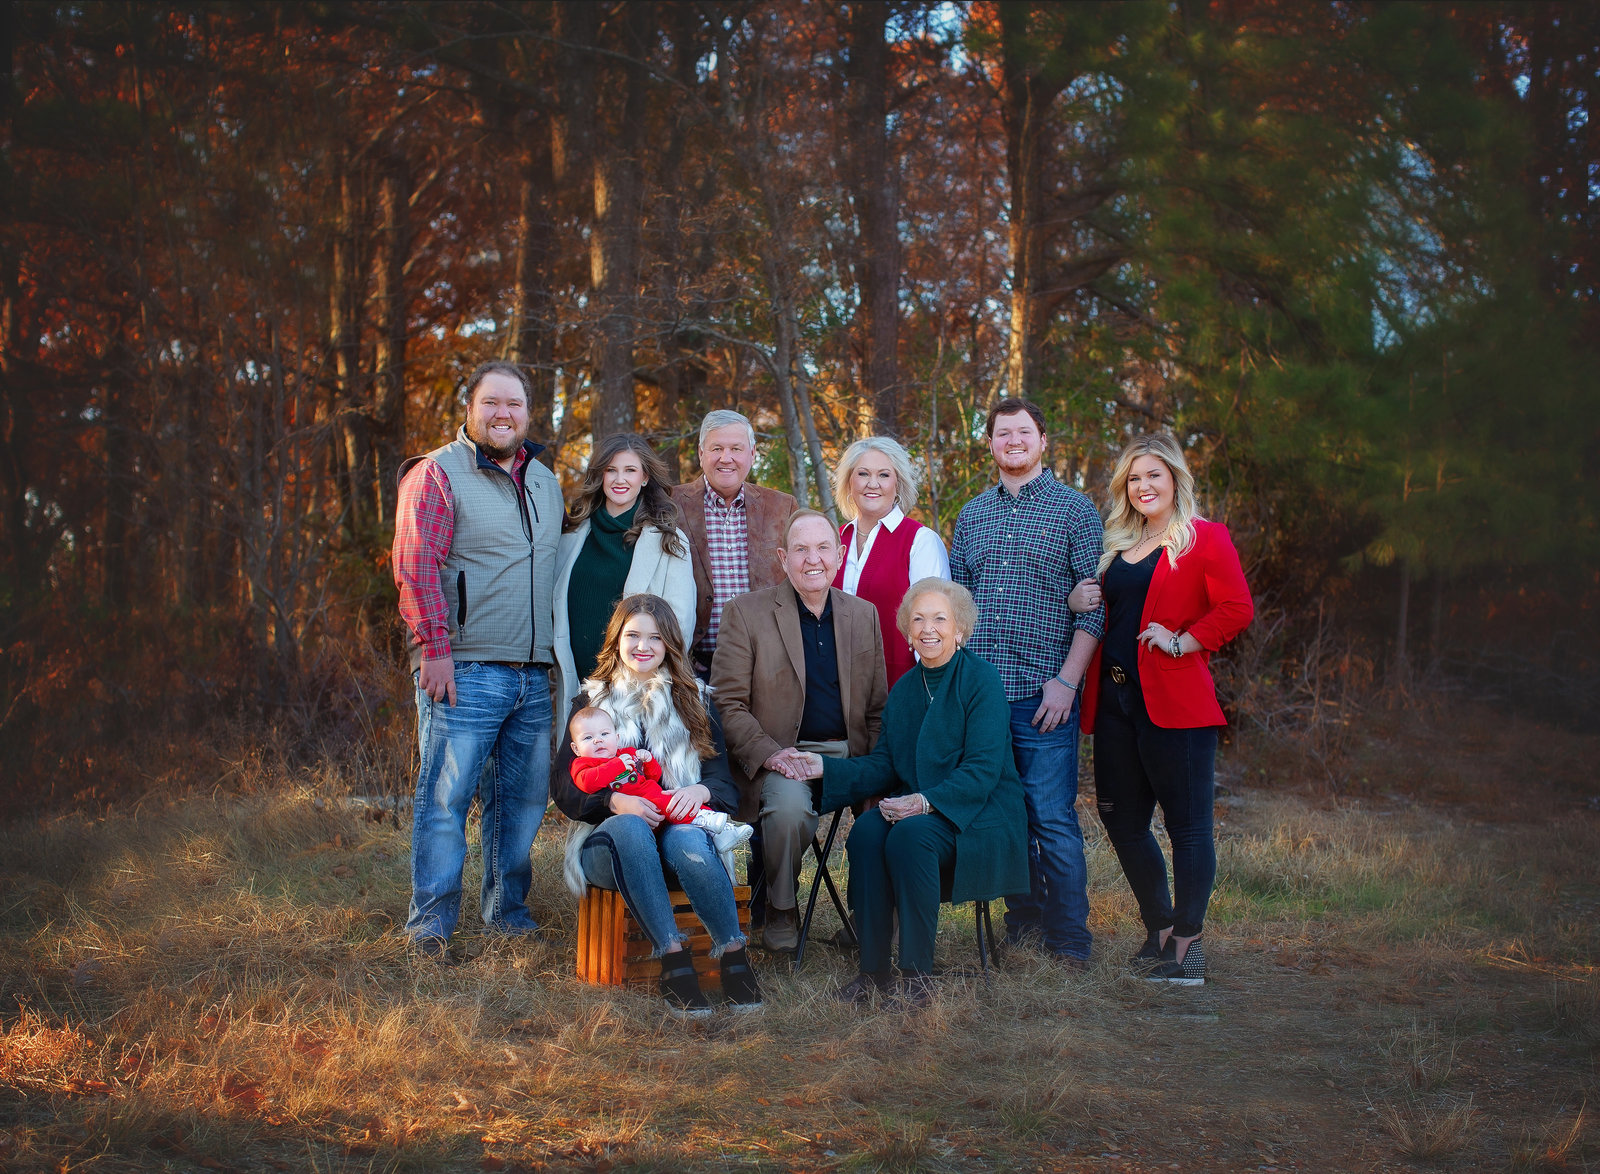 Arkansas Family Portrait Photographer Melanie Runsick